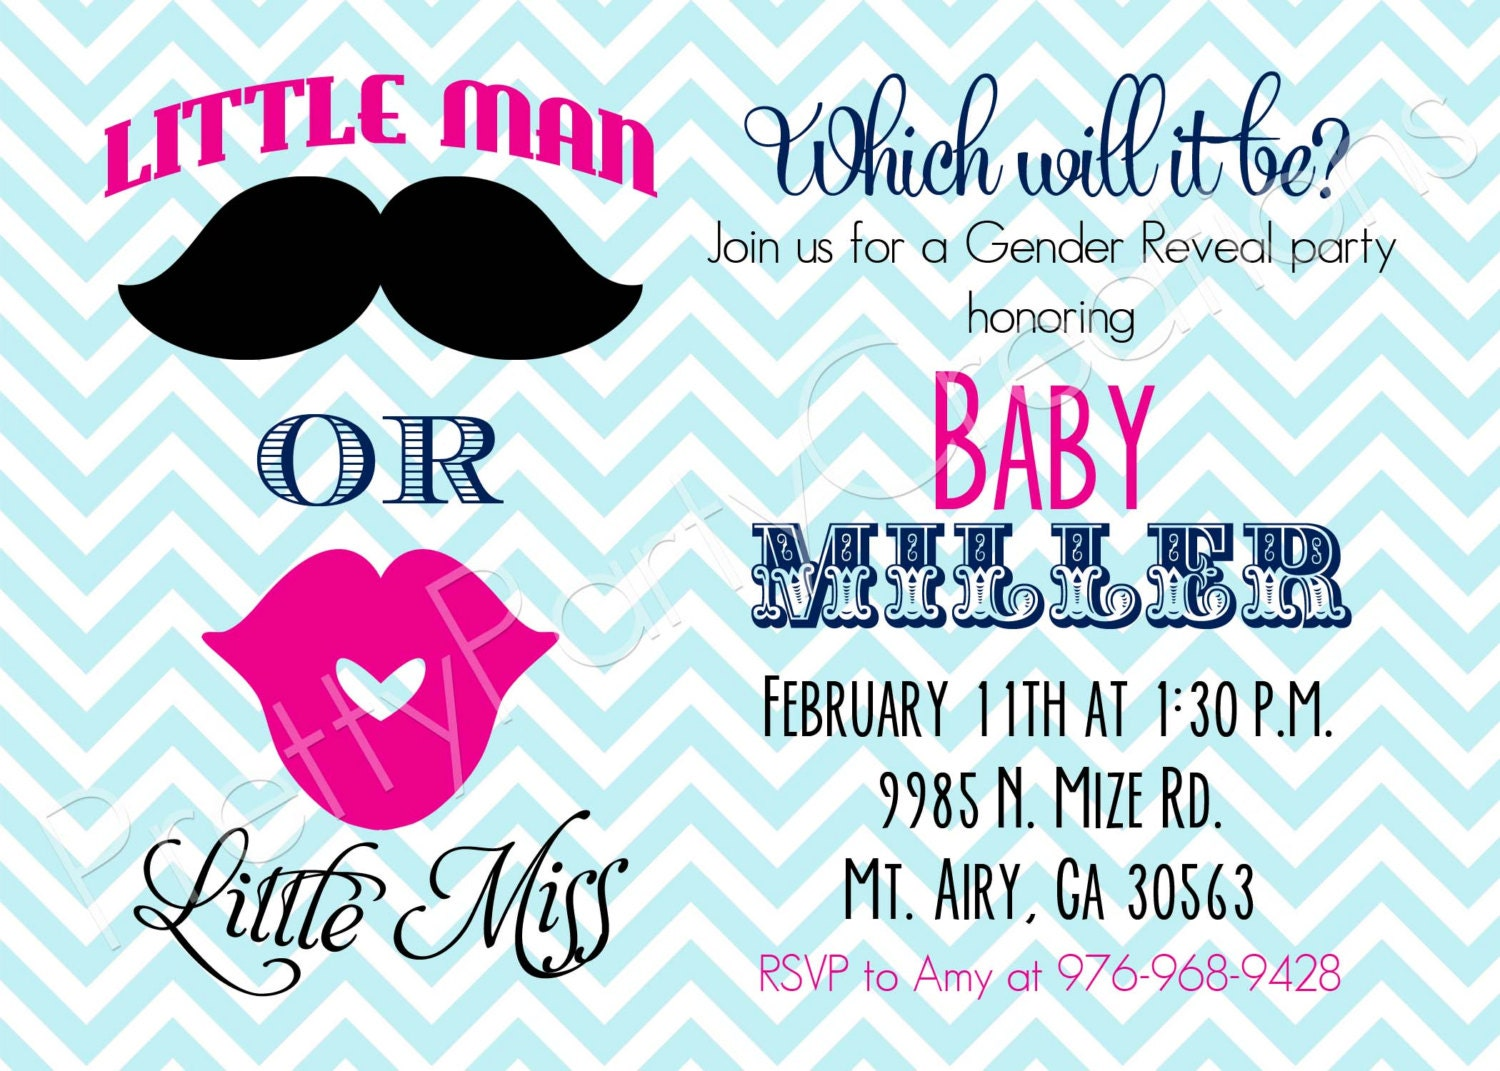 Little MAN or Little MISS Gender Reveal invitation YOU Print